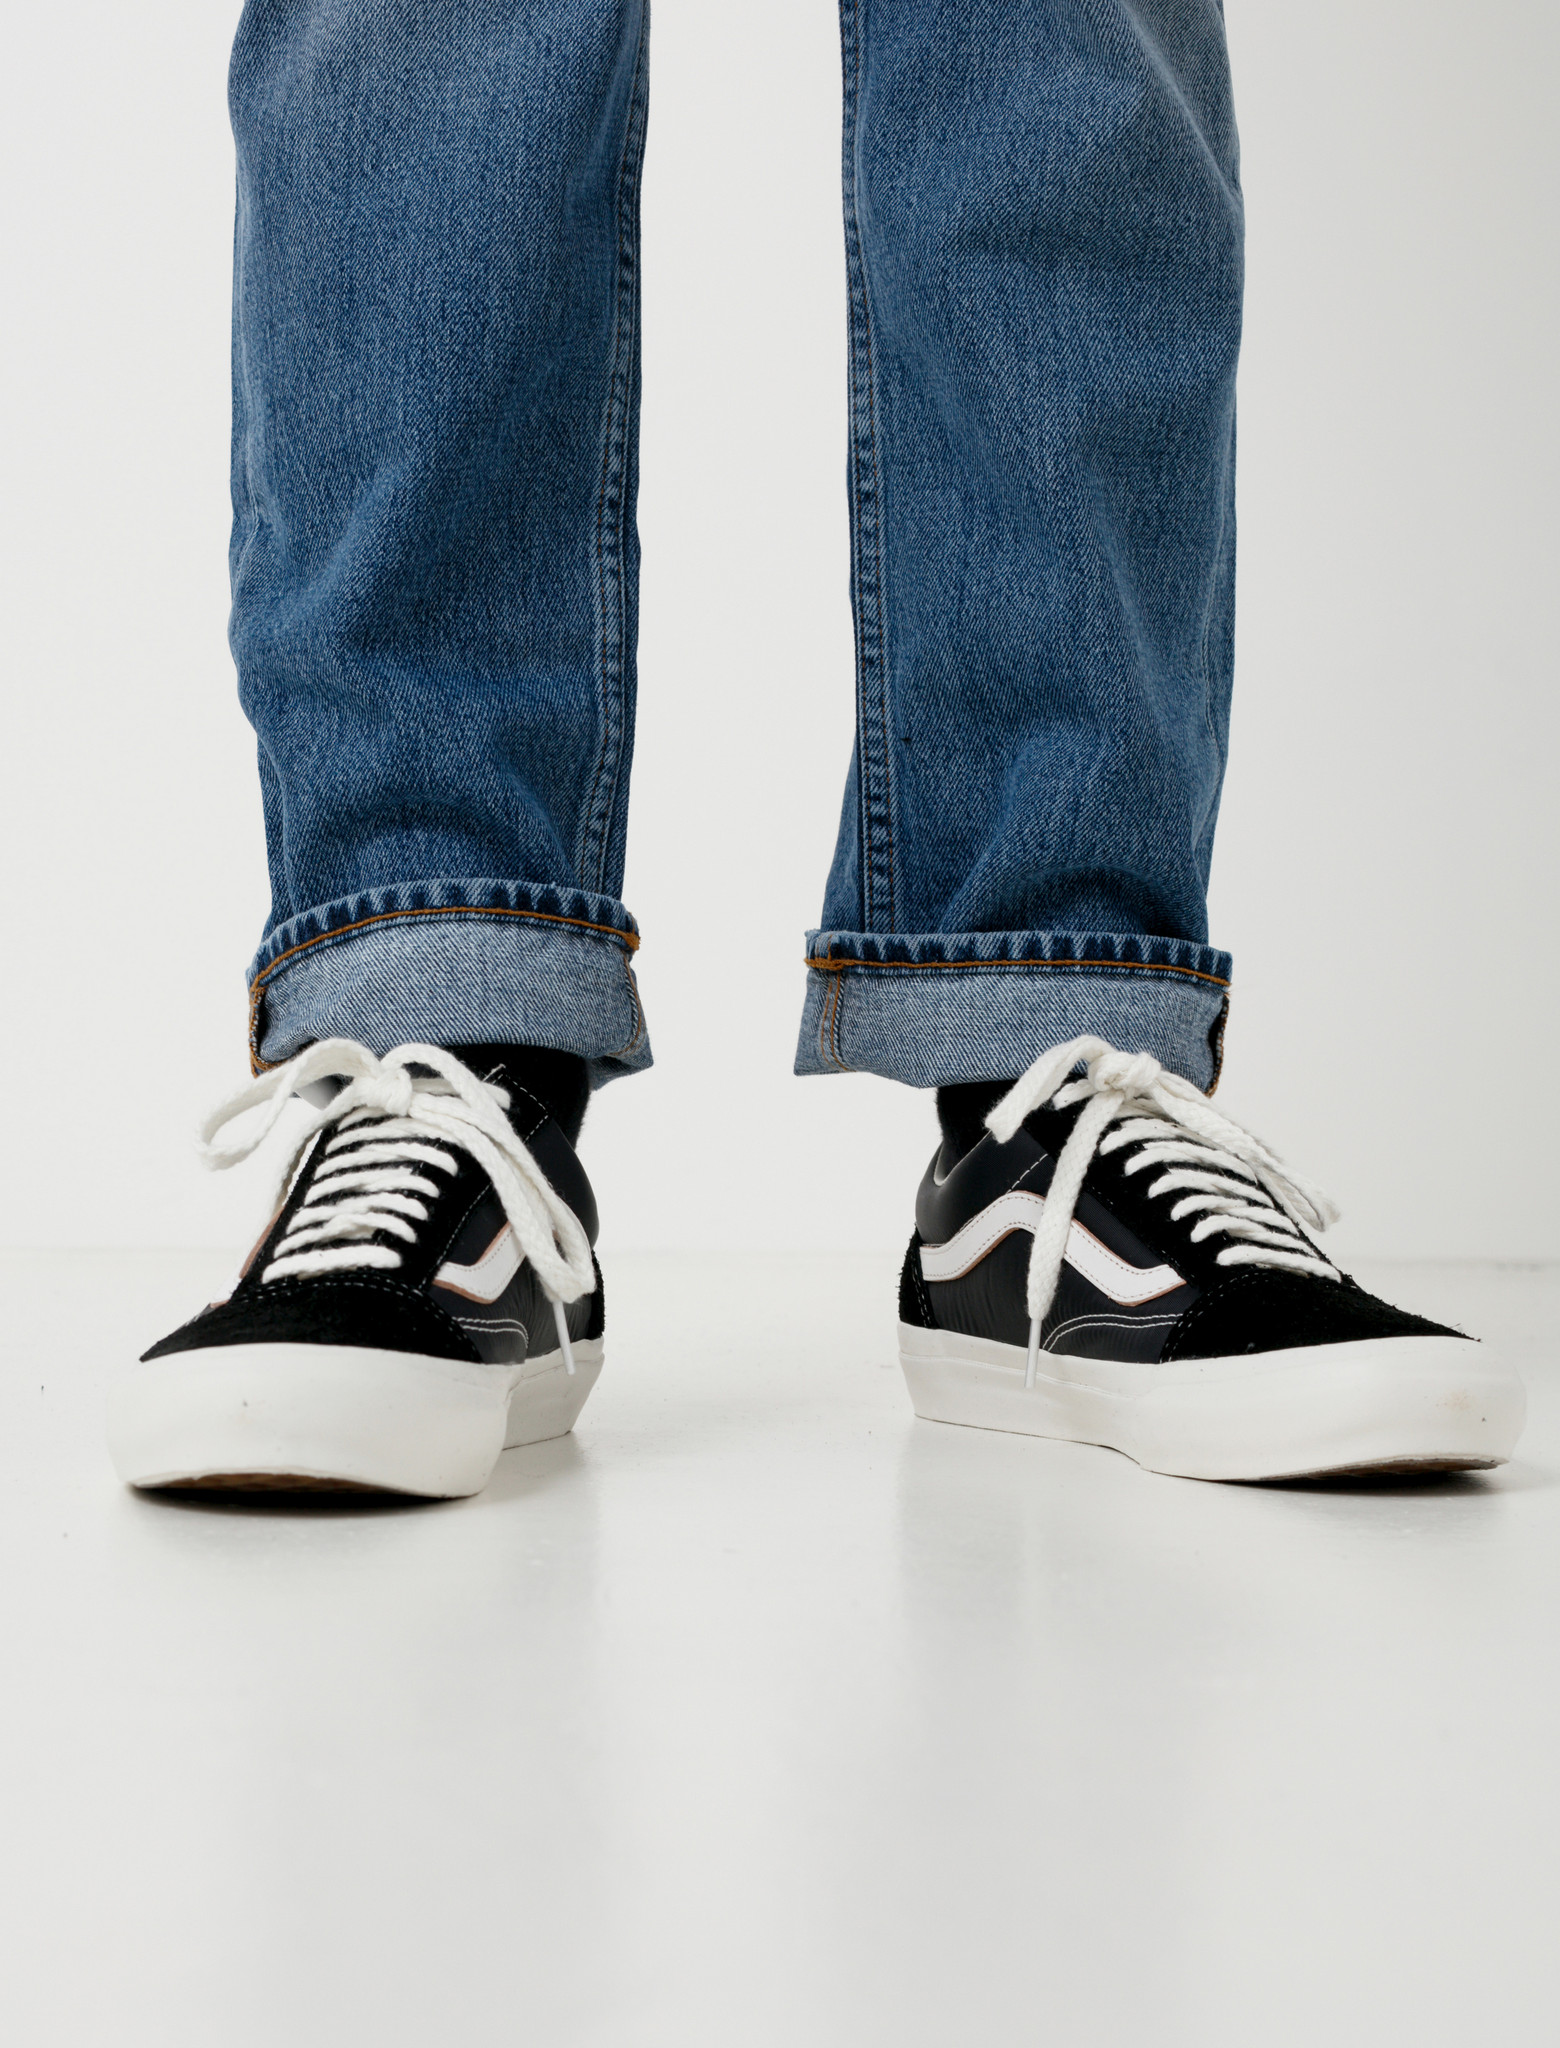 1560 x 2048 www.garmentory.com. The Vault by Vans x Our Legacy Old Skool Pro    39 92 Black 0cb83ced2